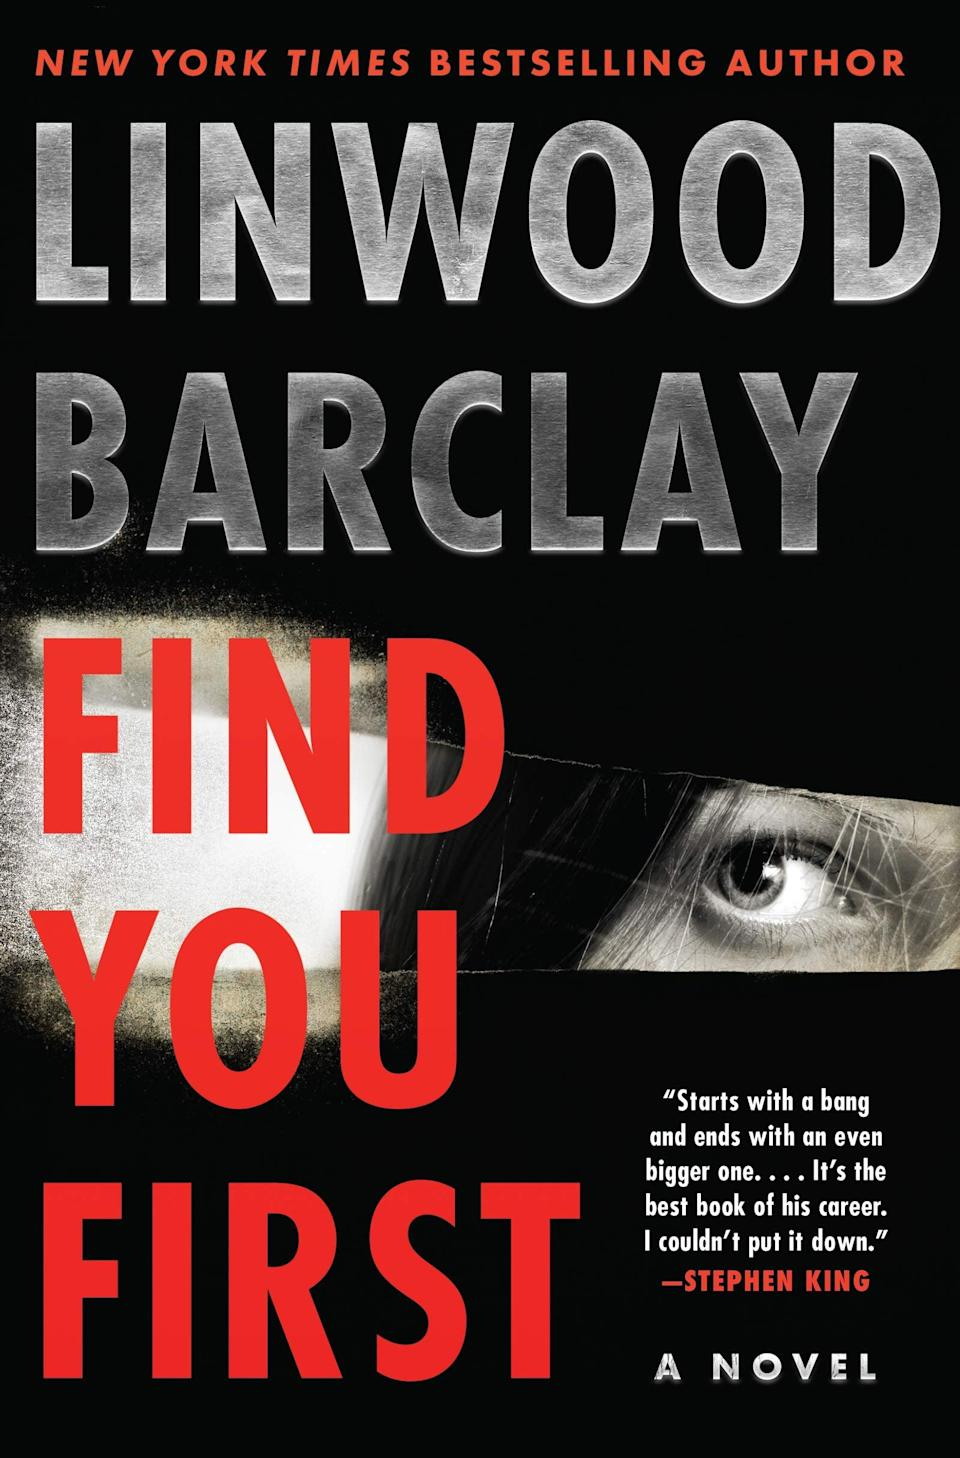 <p><span><strong>Find You First</strong></span> by Linwood Barclay is a chilling story about a man in a race against time to warn his biological children that he may have passed on a terminal disease to them. Two decades before he became a tech millionaire, Miles Cookson donated his sperm to make ends meet, and as a result, he has nine biological children he has never met. When he learns he doesn't have long to live, he decides to track down all nine of his children to warn them he may have passed on the disease and to give them his fortune - but just as he connects with his filmmaker daughter, Chloe, the other children begin disappearing as if they never existed at all. </p> <p><em>Out May 11</em></p>